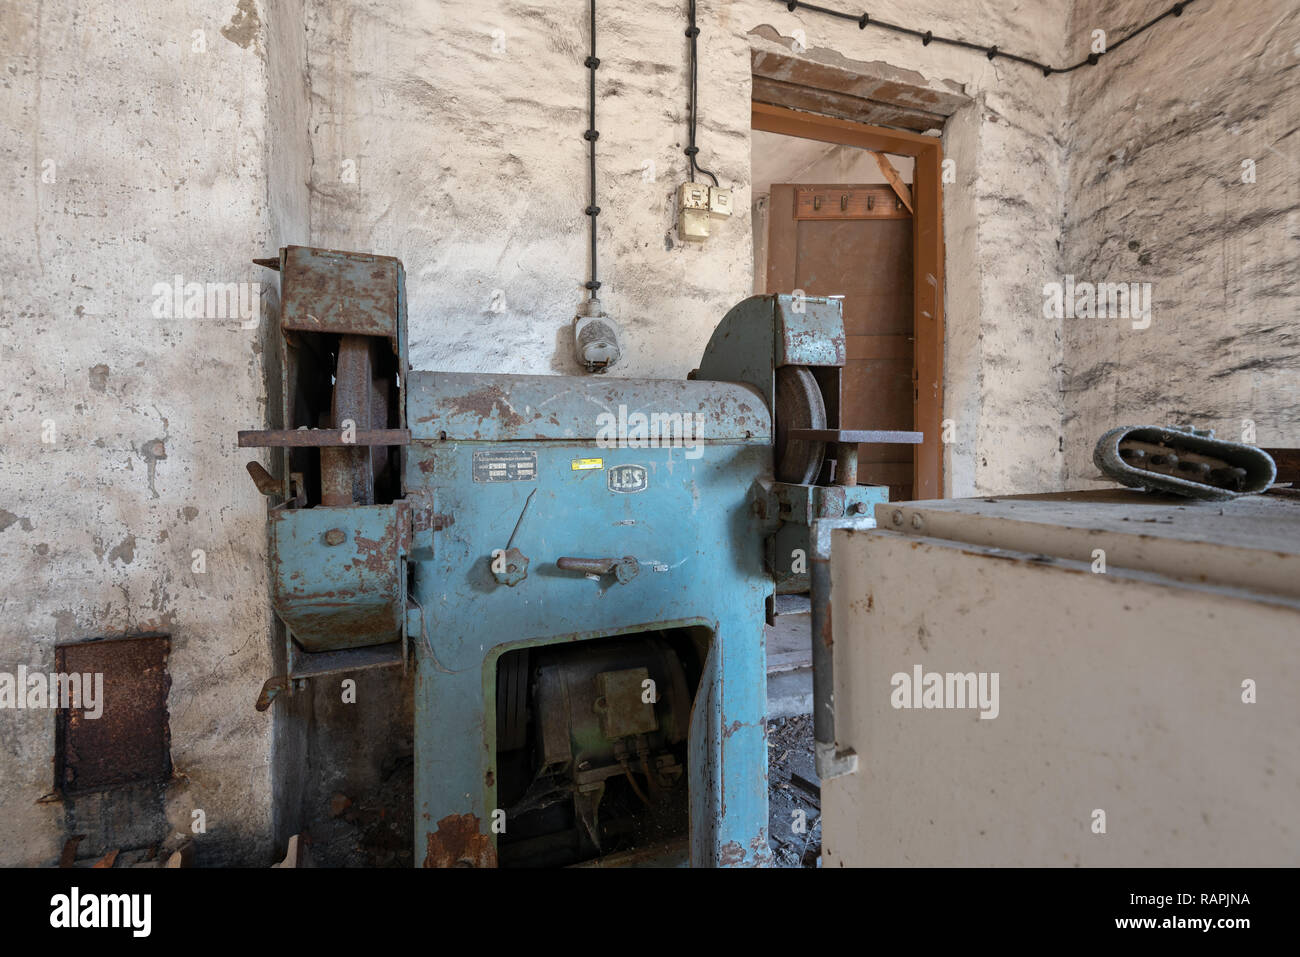 Prerow, Germany - December 30, 2018: View of an old grinding machine in the former training centre of the Gesellschaft für Sport und Technik (GST) of  - Stock Image